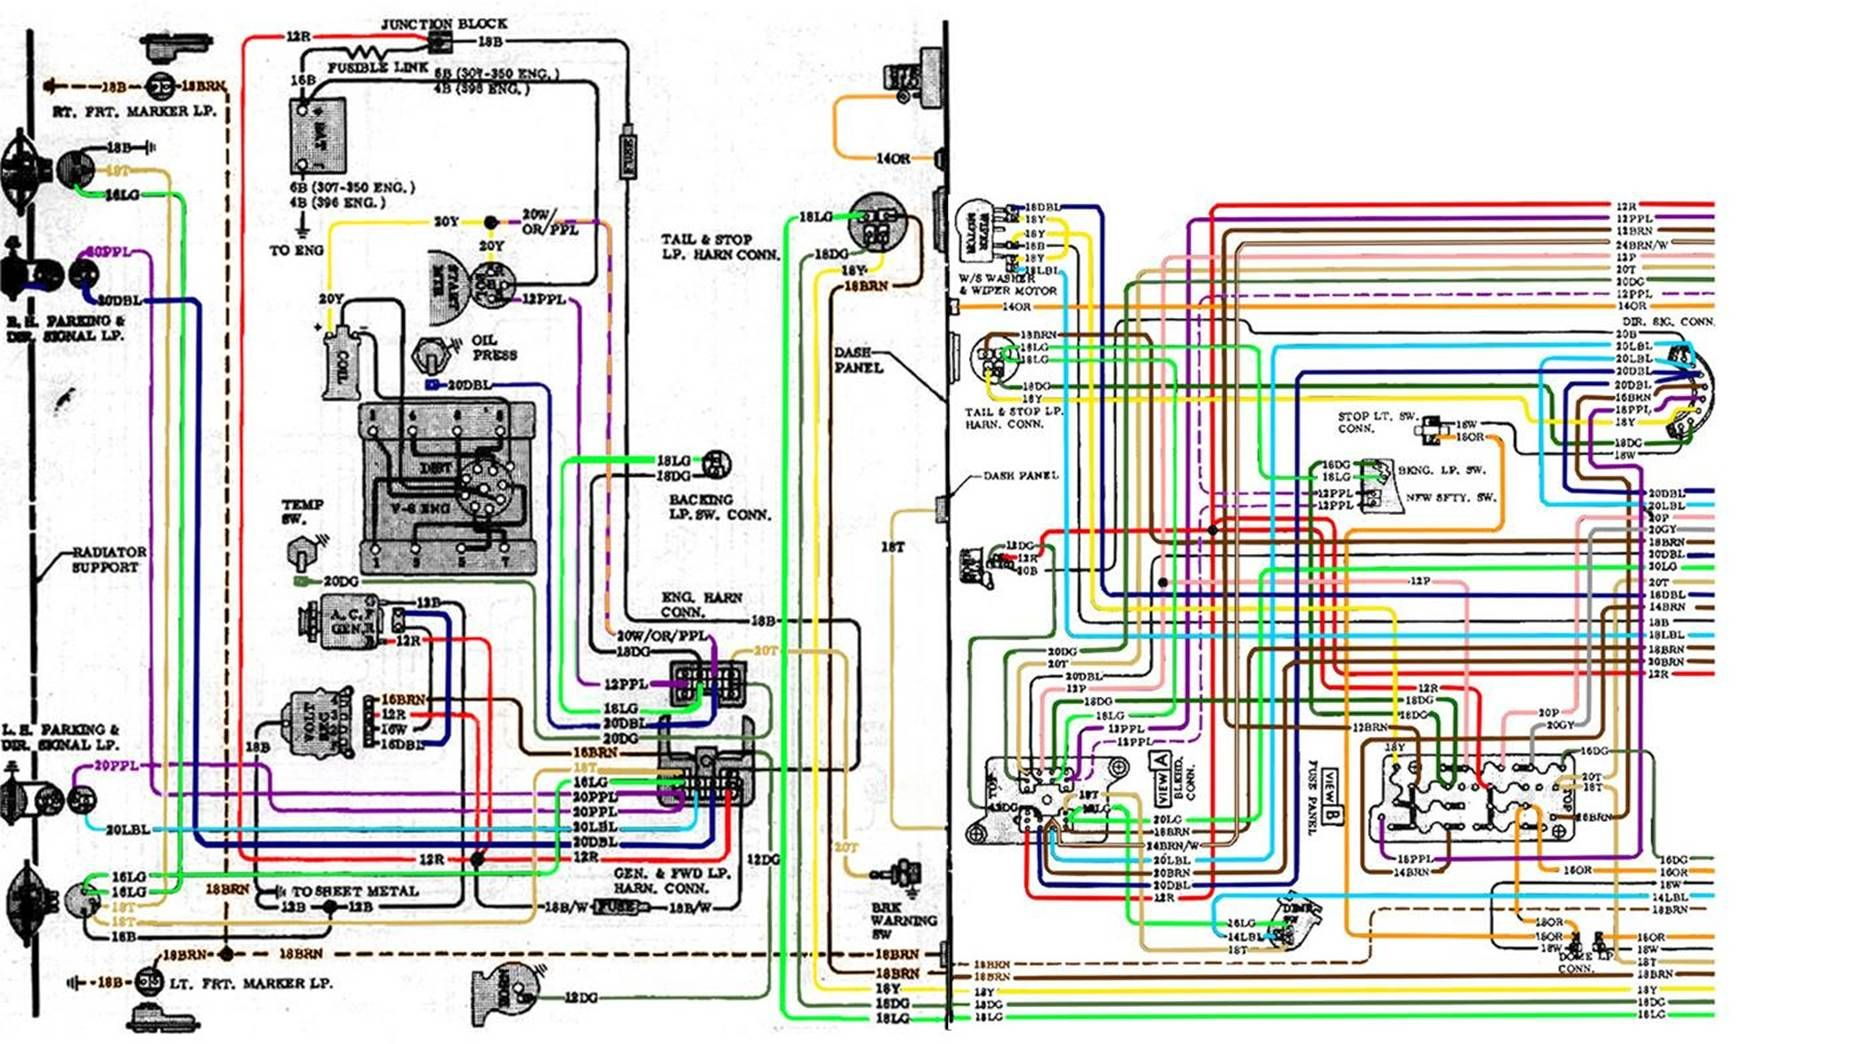 71 chevy 350 ignition wiring diagram - wiring diagram bounce-note -  bounce-note.agriturismoduemadonne.it  agriturismoduemadonne.it